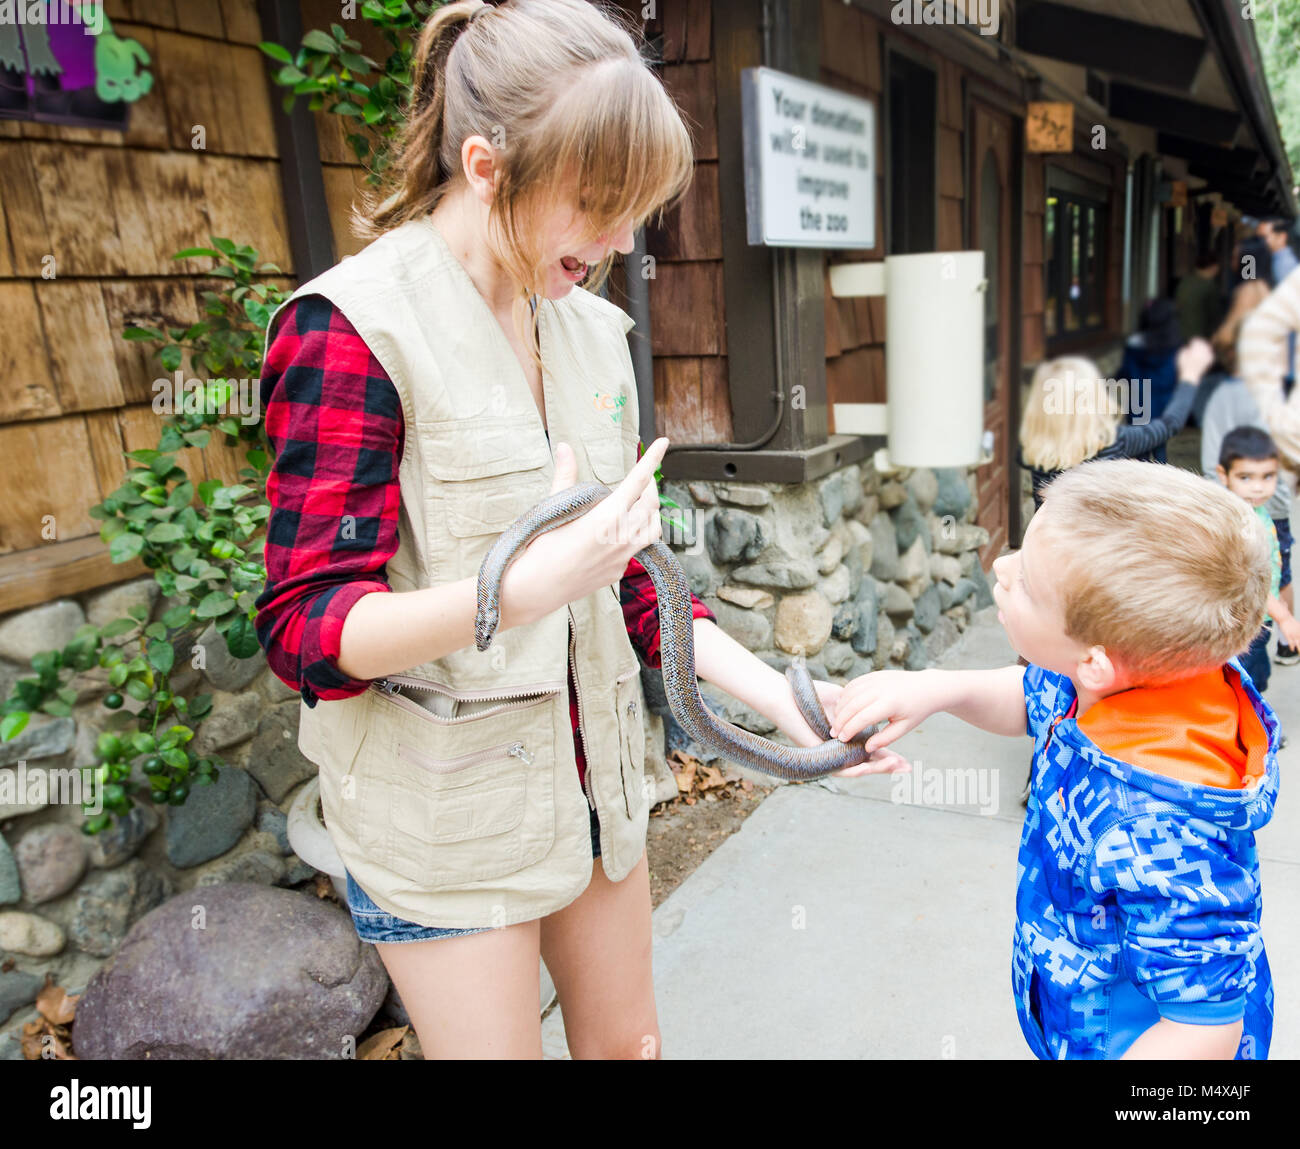 Smiling zoo educator shows a snake to a boy. - Stock Image